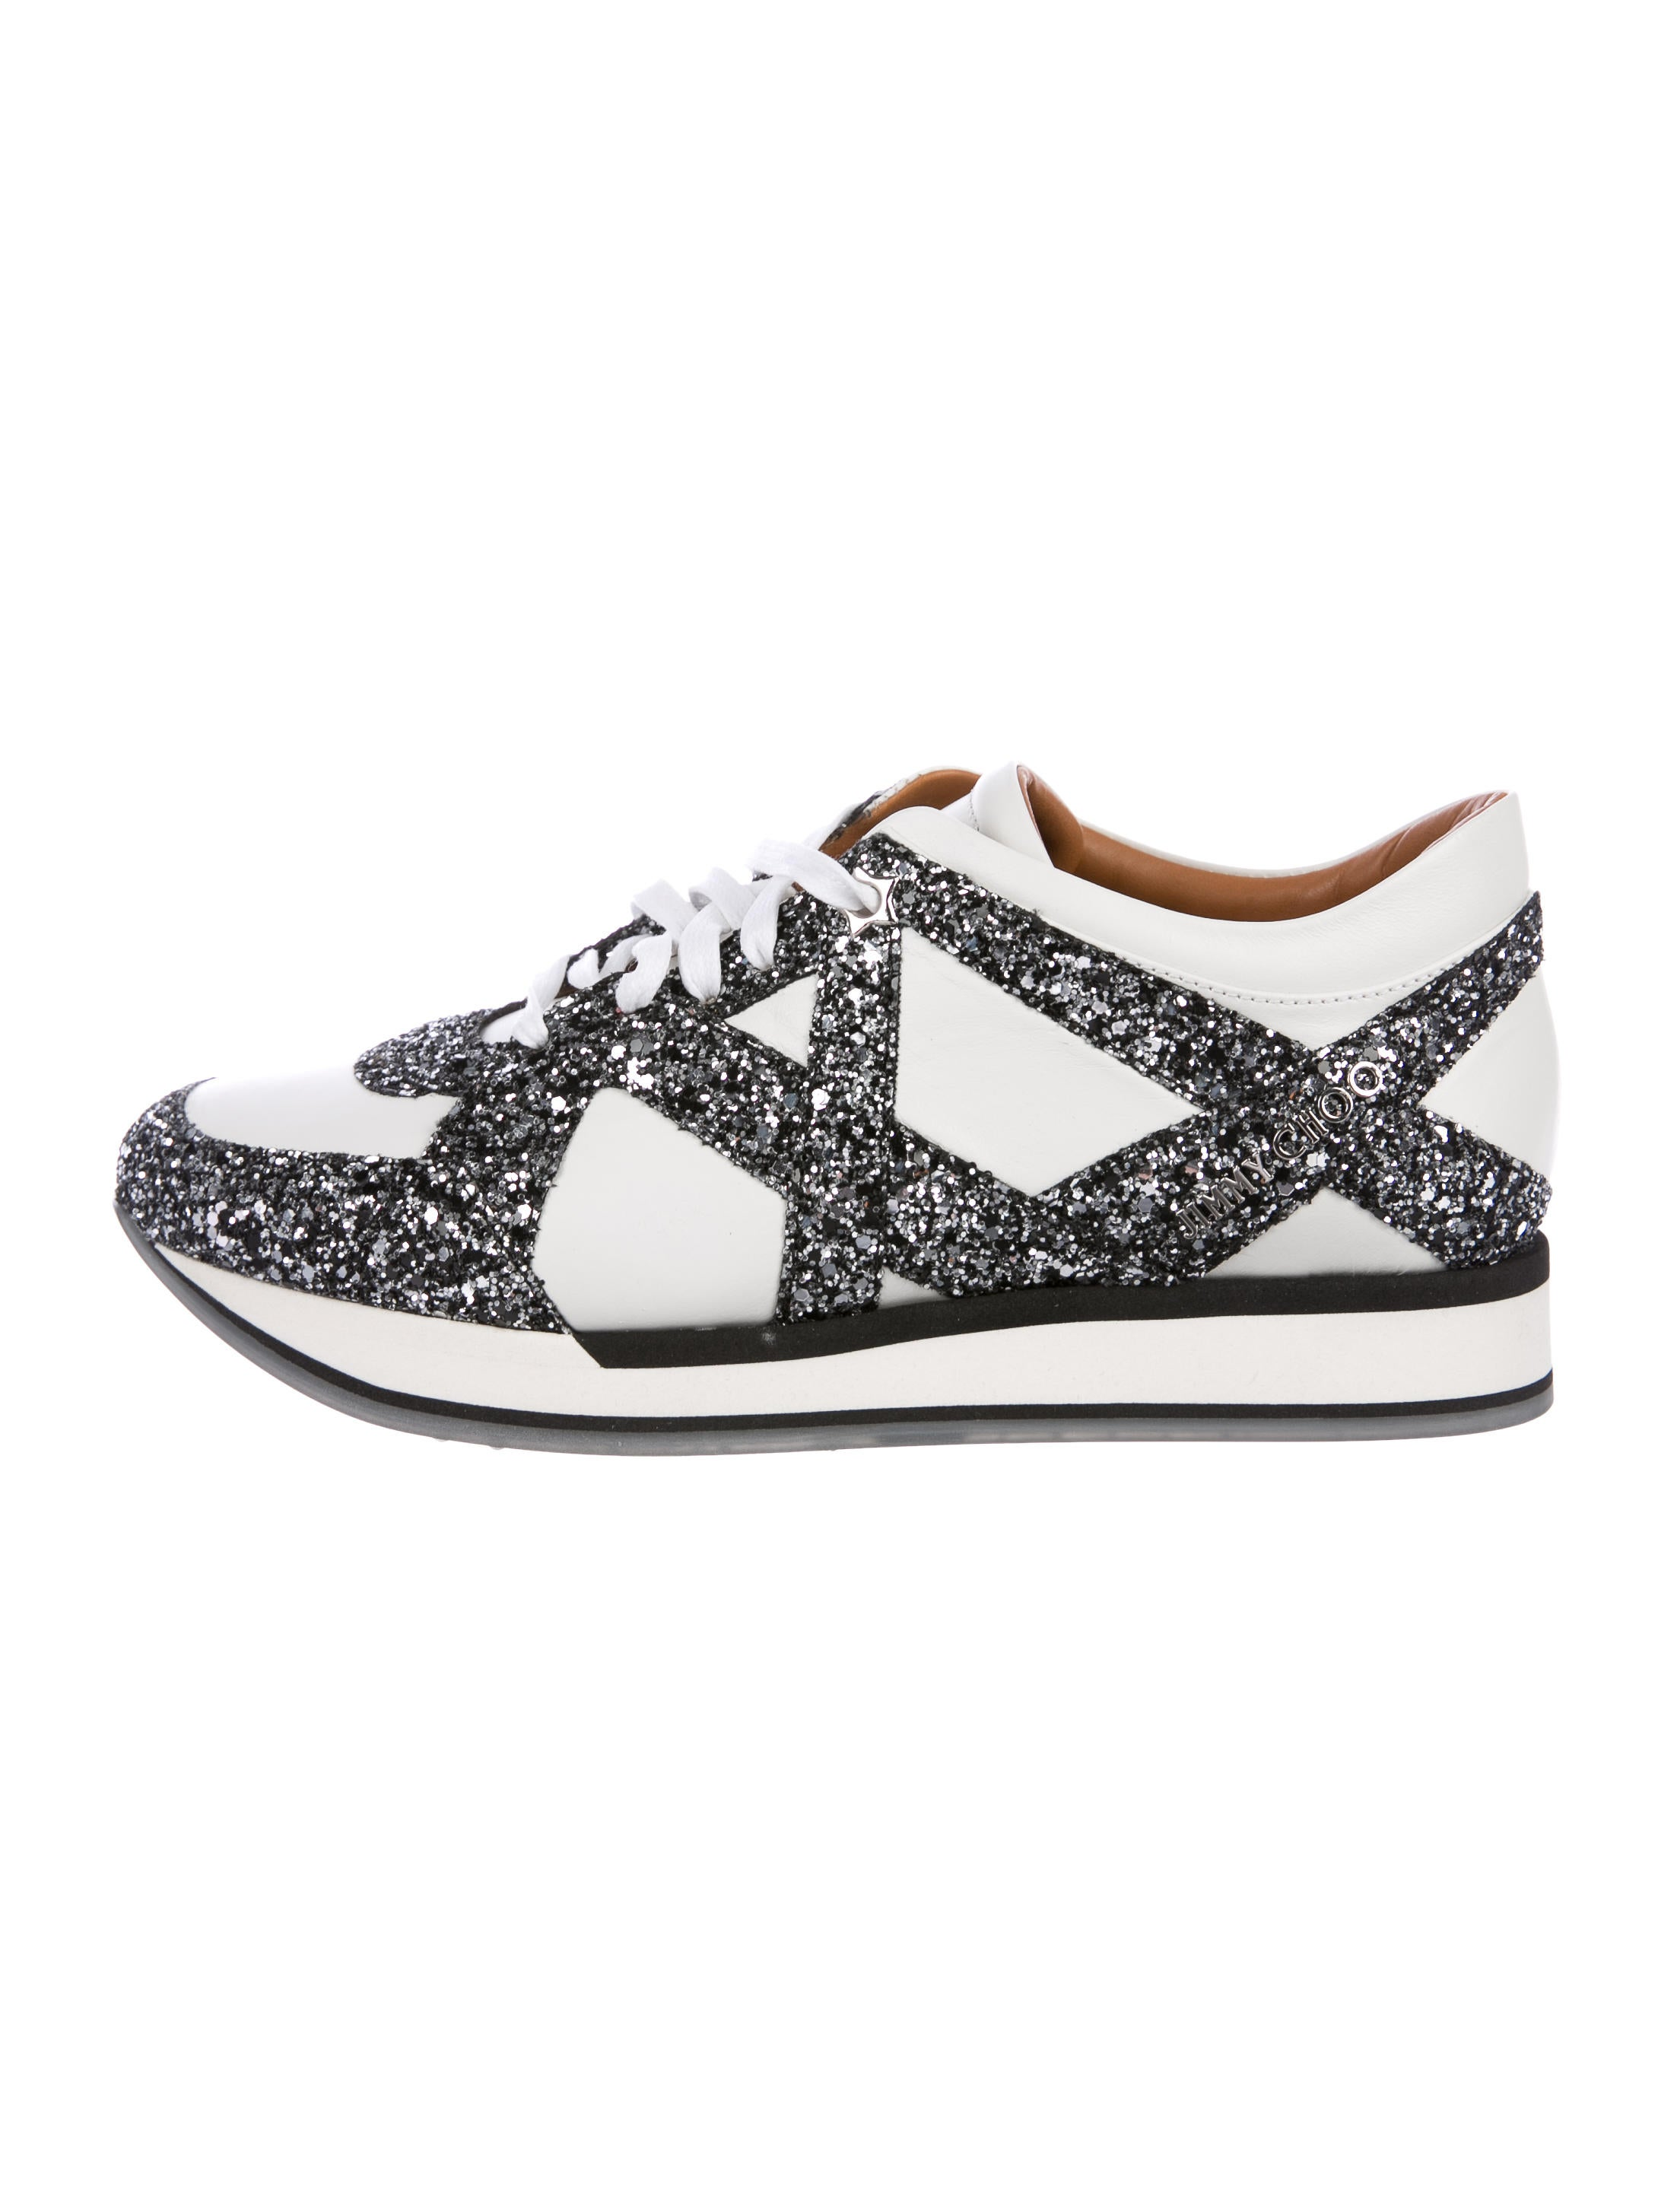 FOOTWEAR - Low-tops & sneakers Jimmy Choo London Z7k6GTHWw